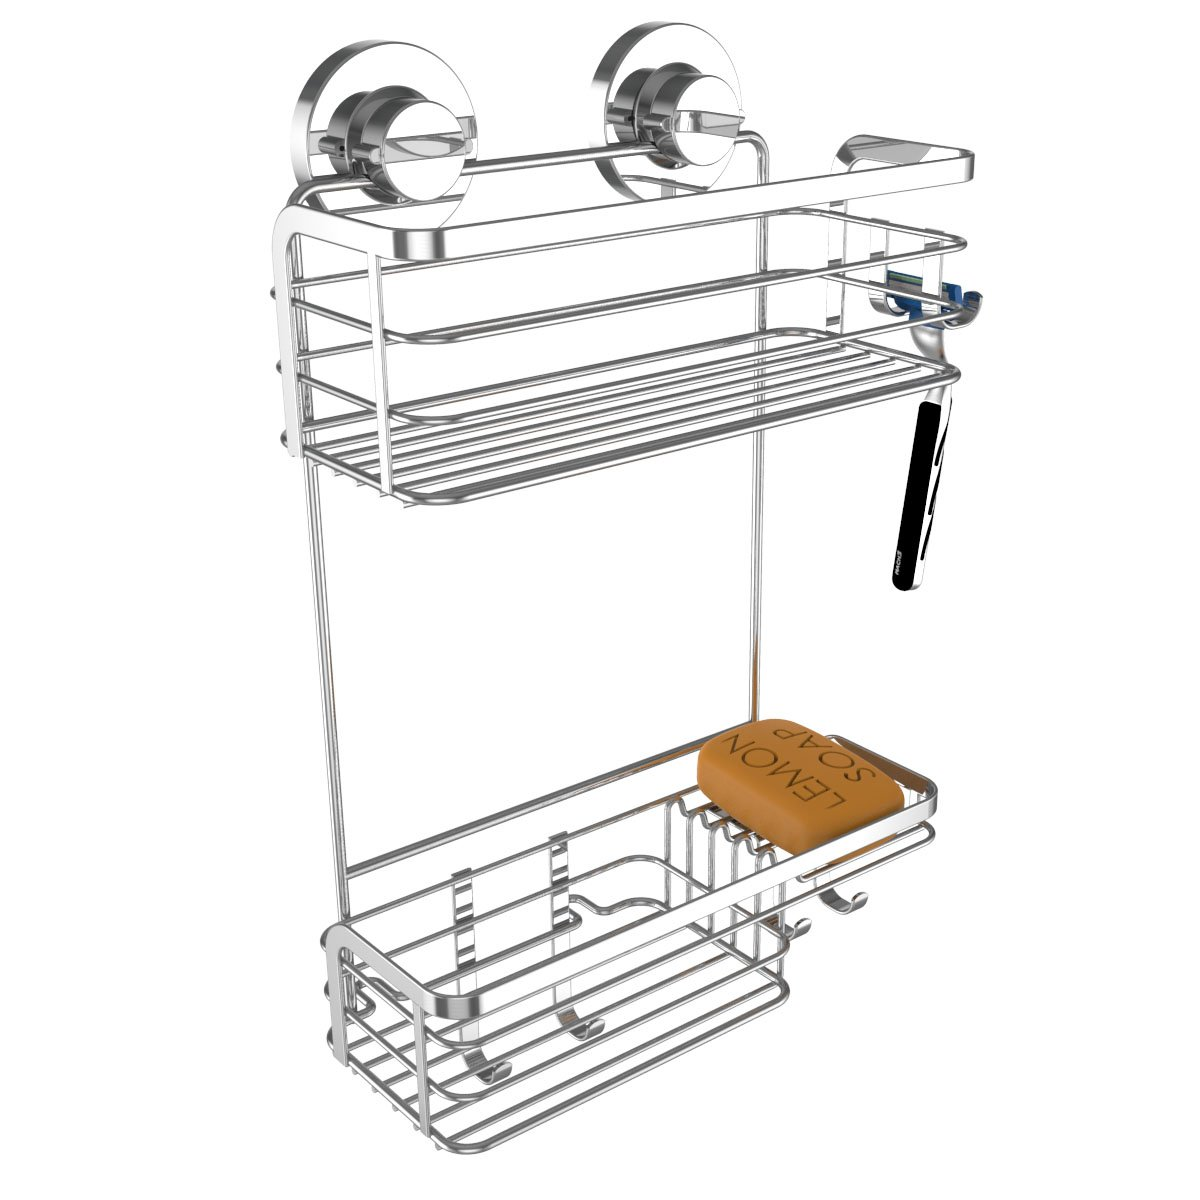 Amazon.com: Vidan Home Solutions Shower Caddy | Strong Suction Cup ...